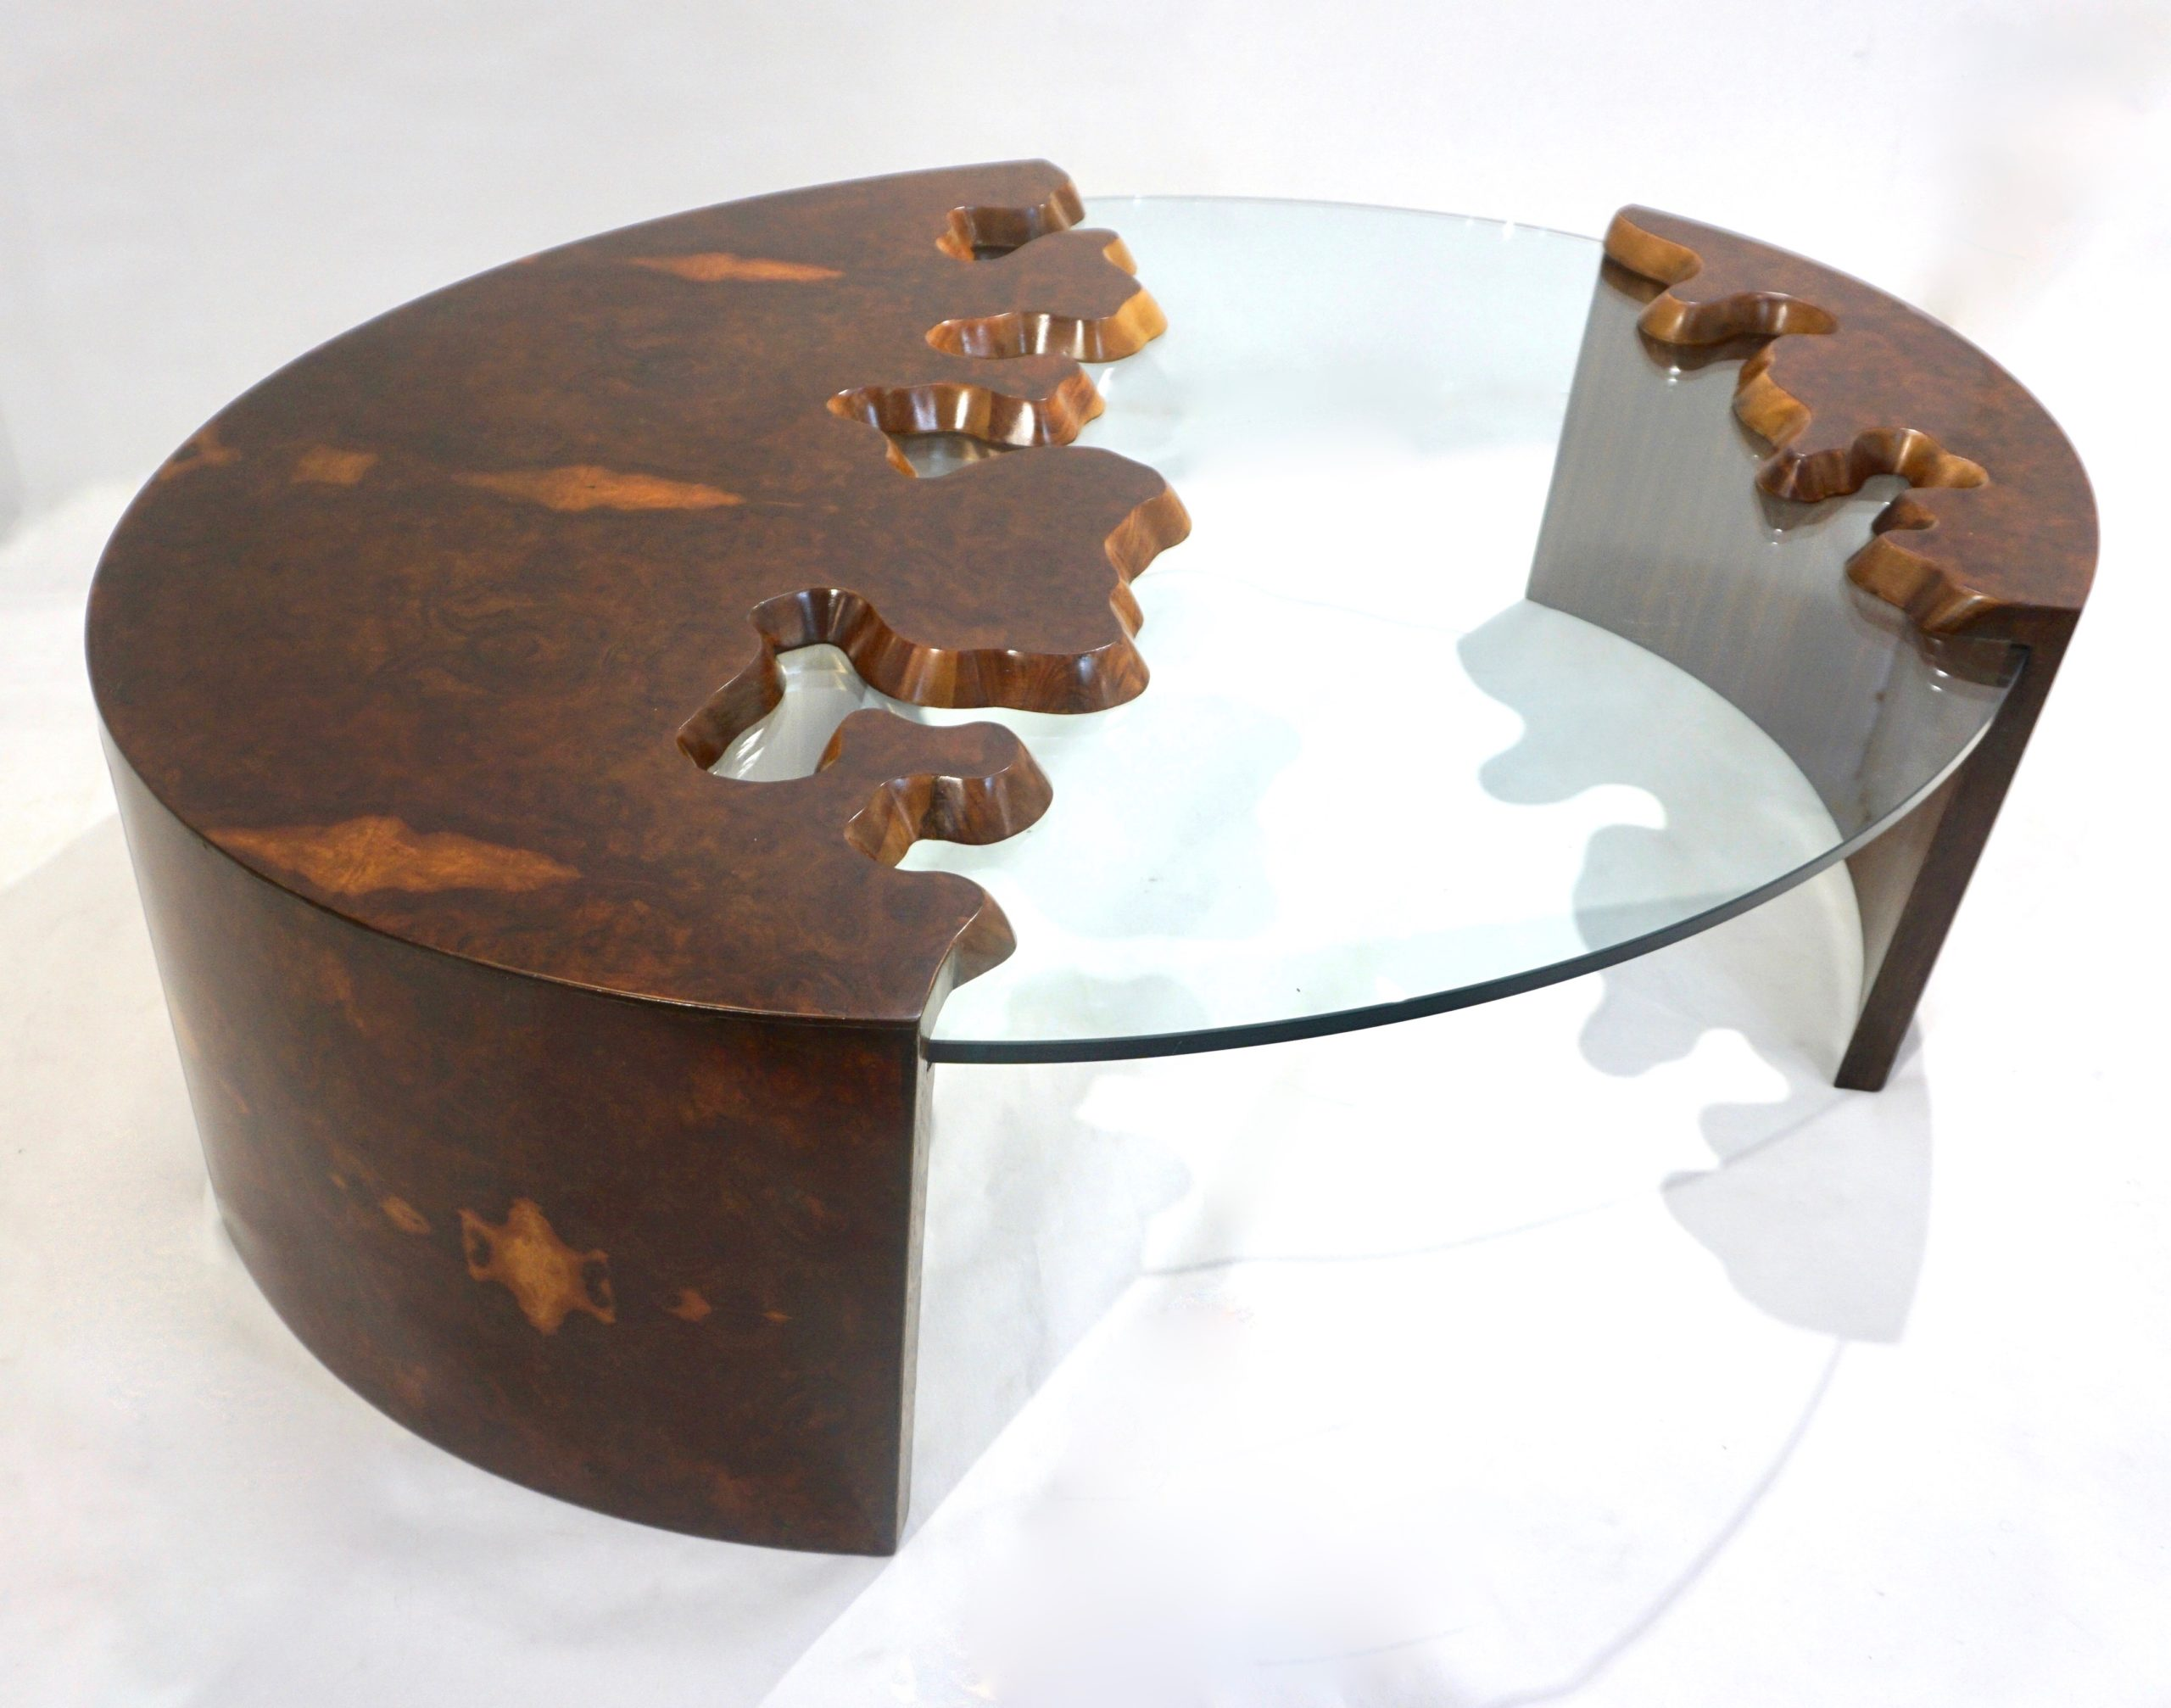 cosulich_interiors_and_antiques_products_new_york_design_Bespoke_1980_Italian_Organic_Walnut_Veneer_Glass_Oval_Coffee_Table_top_side-scaled-1